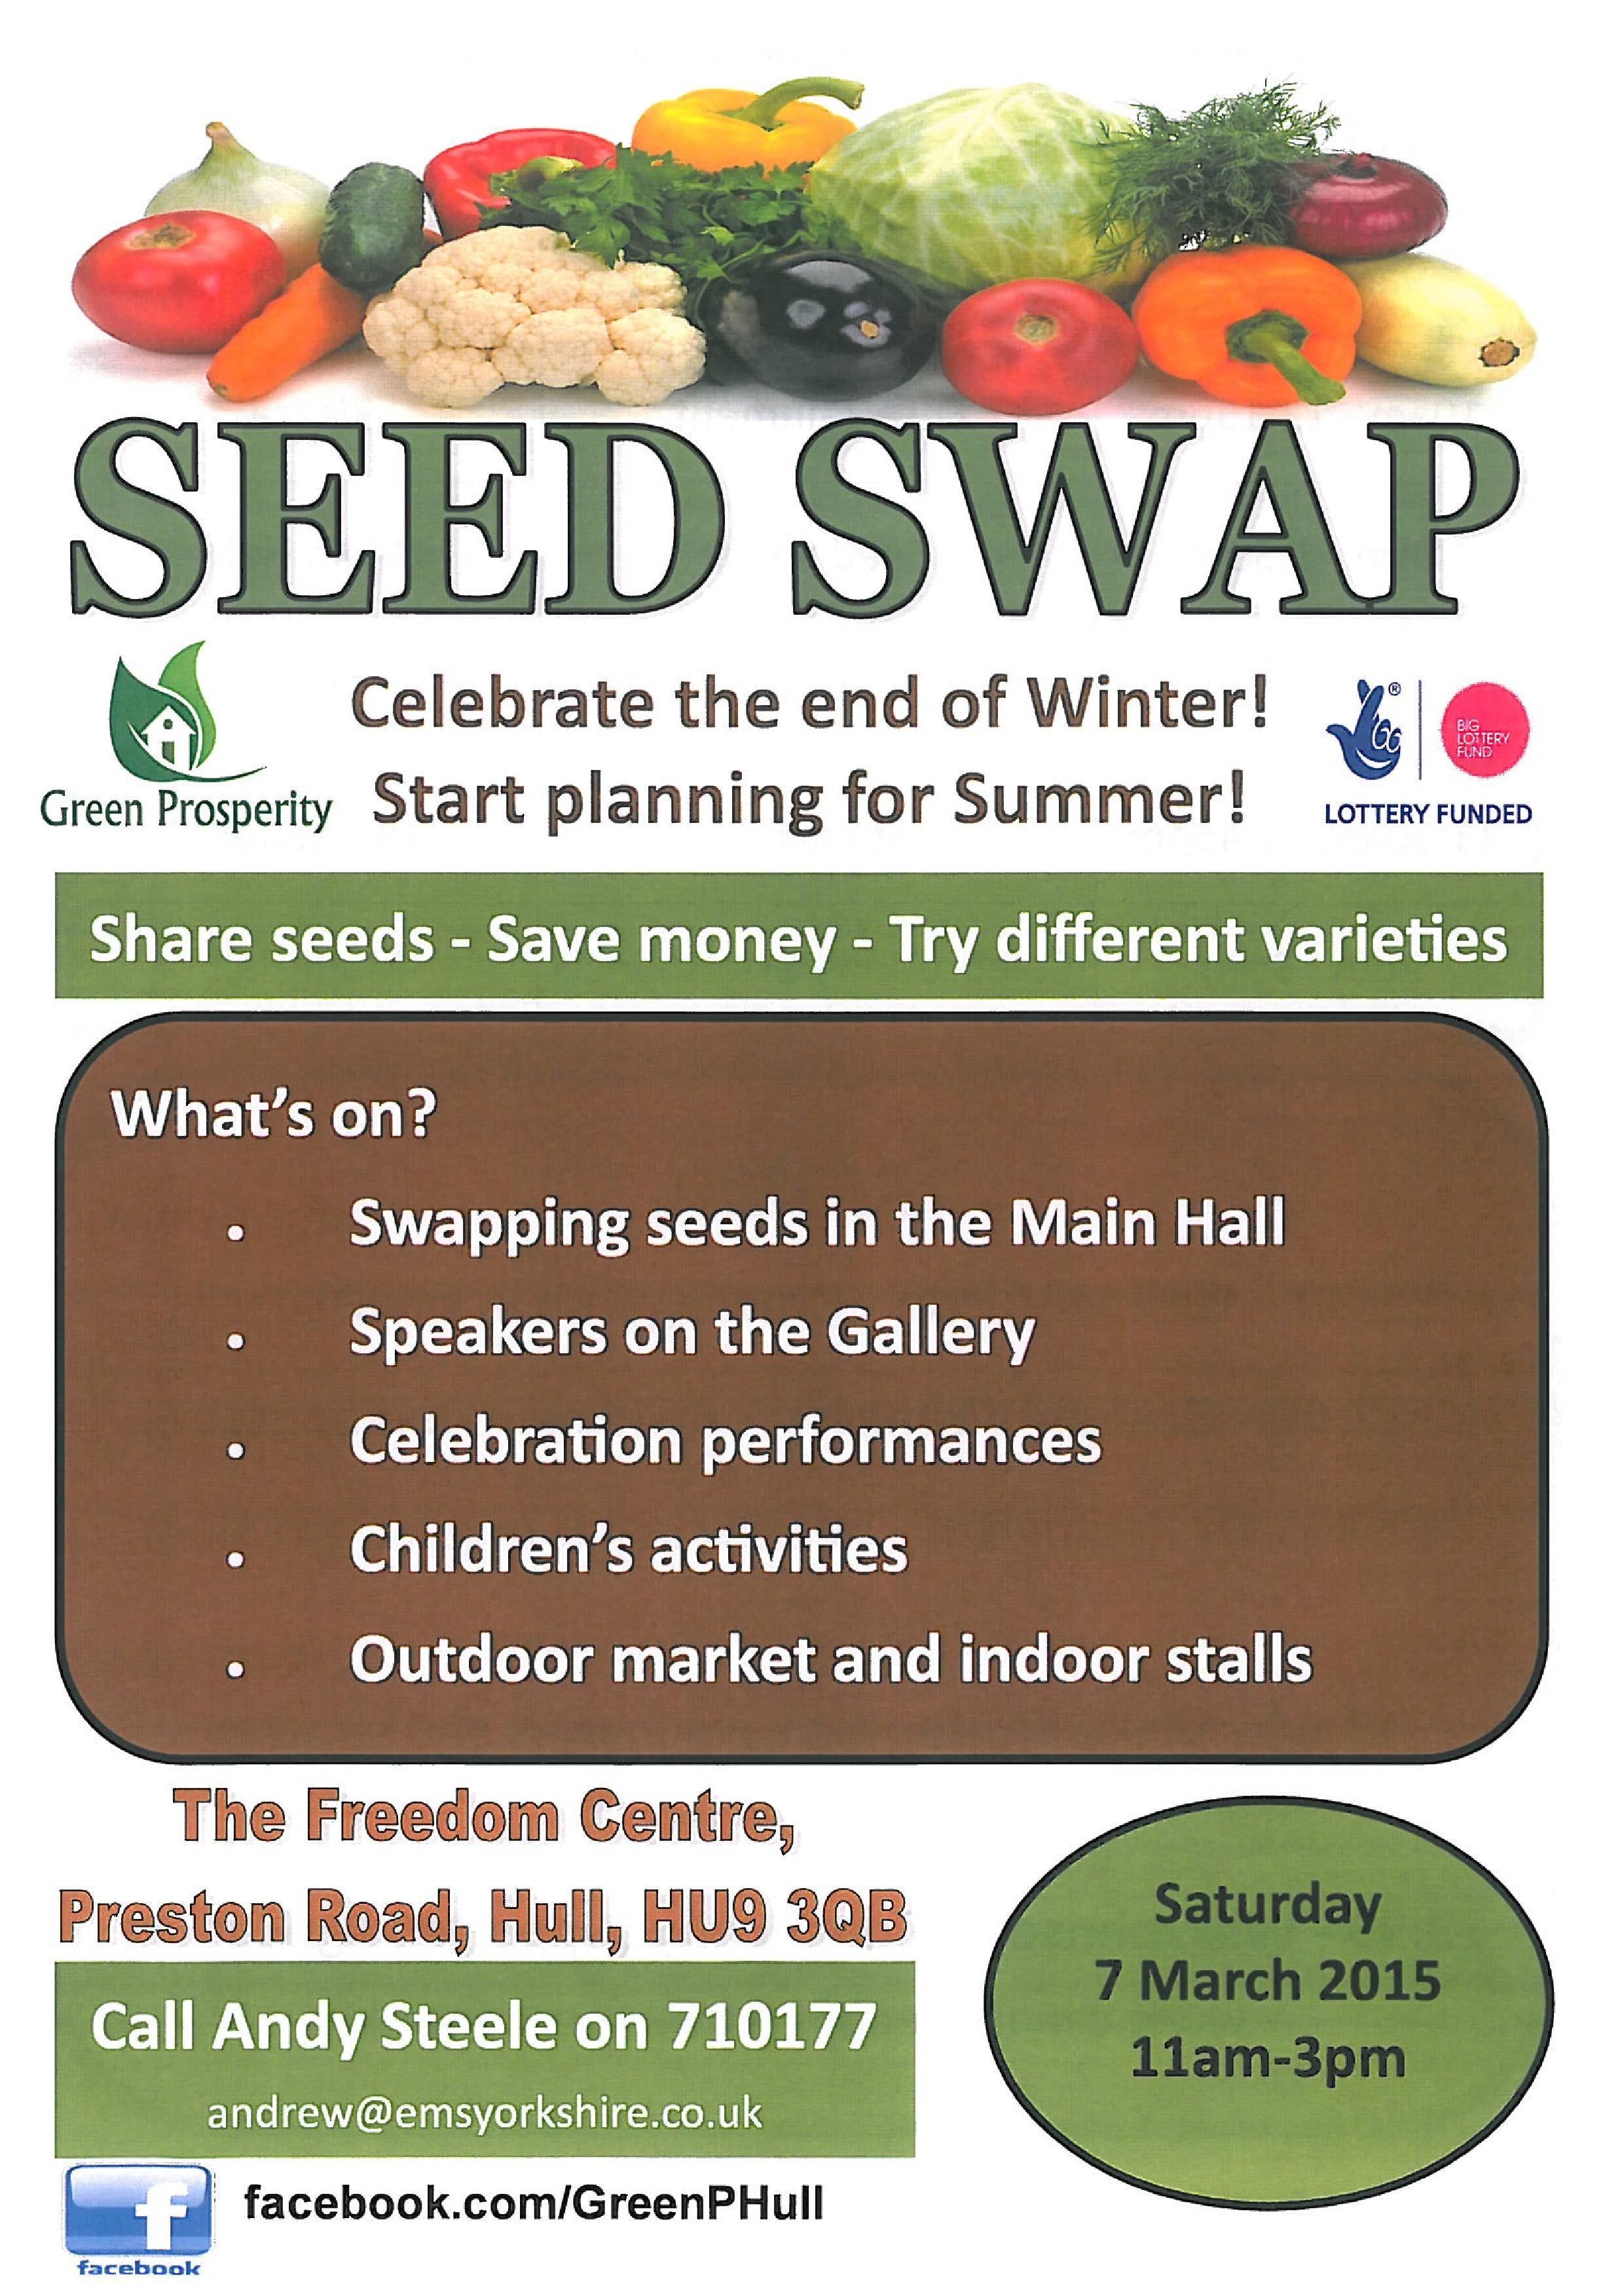 seed swap 2015 A4-page-001